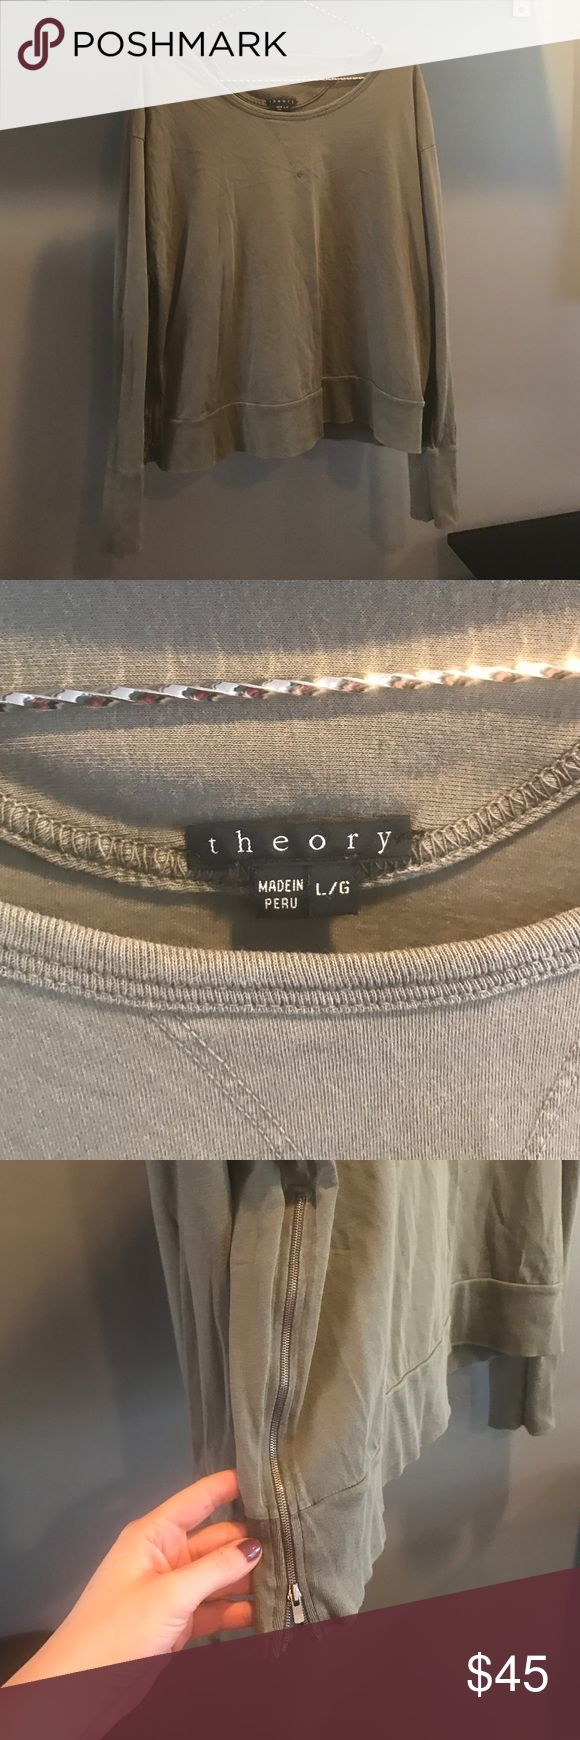 Theory Top, Casual - Can't beat this price! Casual Theory Top/Light Sweatshirt. Army green. Large but would look great slouchy on a smaller frame. Great zipper detail on both sides. Freshly steamed! Theory Tops